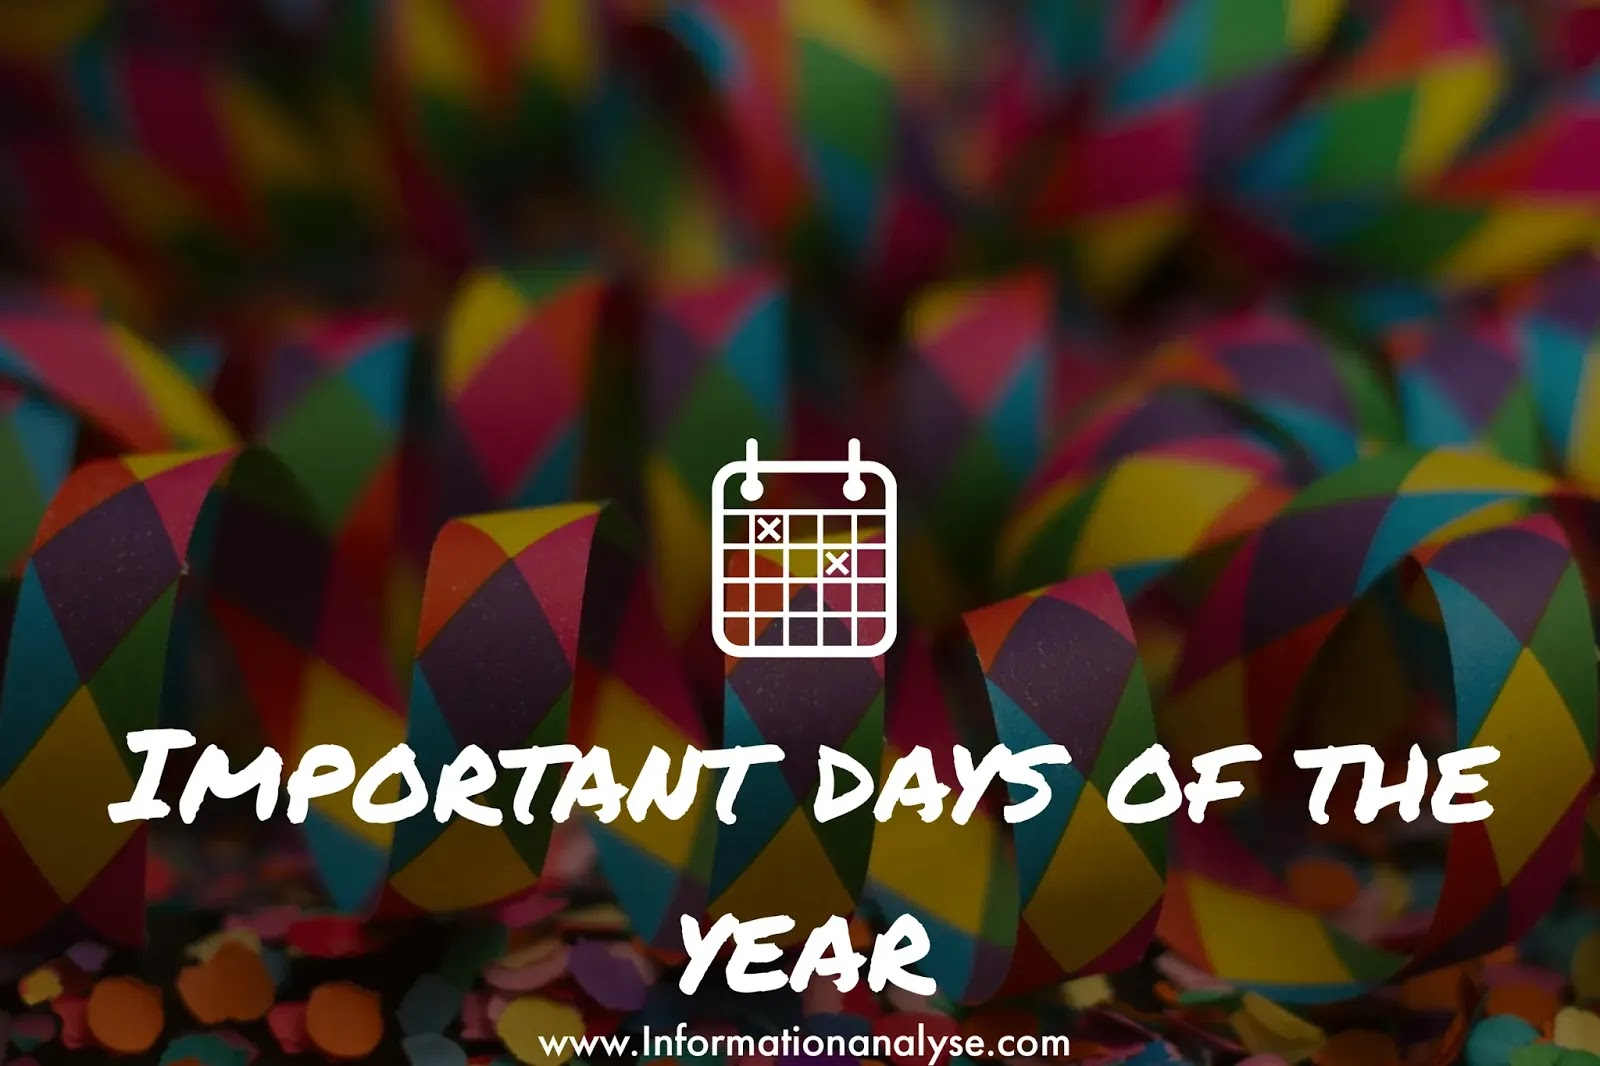 List of important days of the year